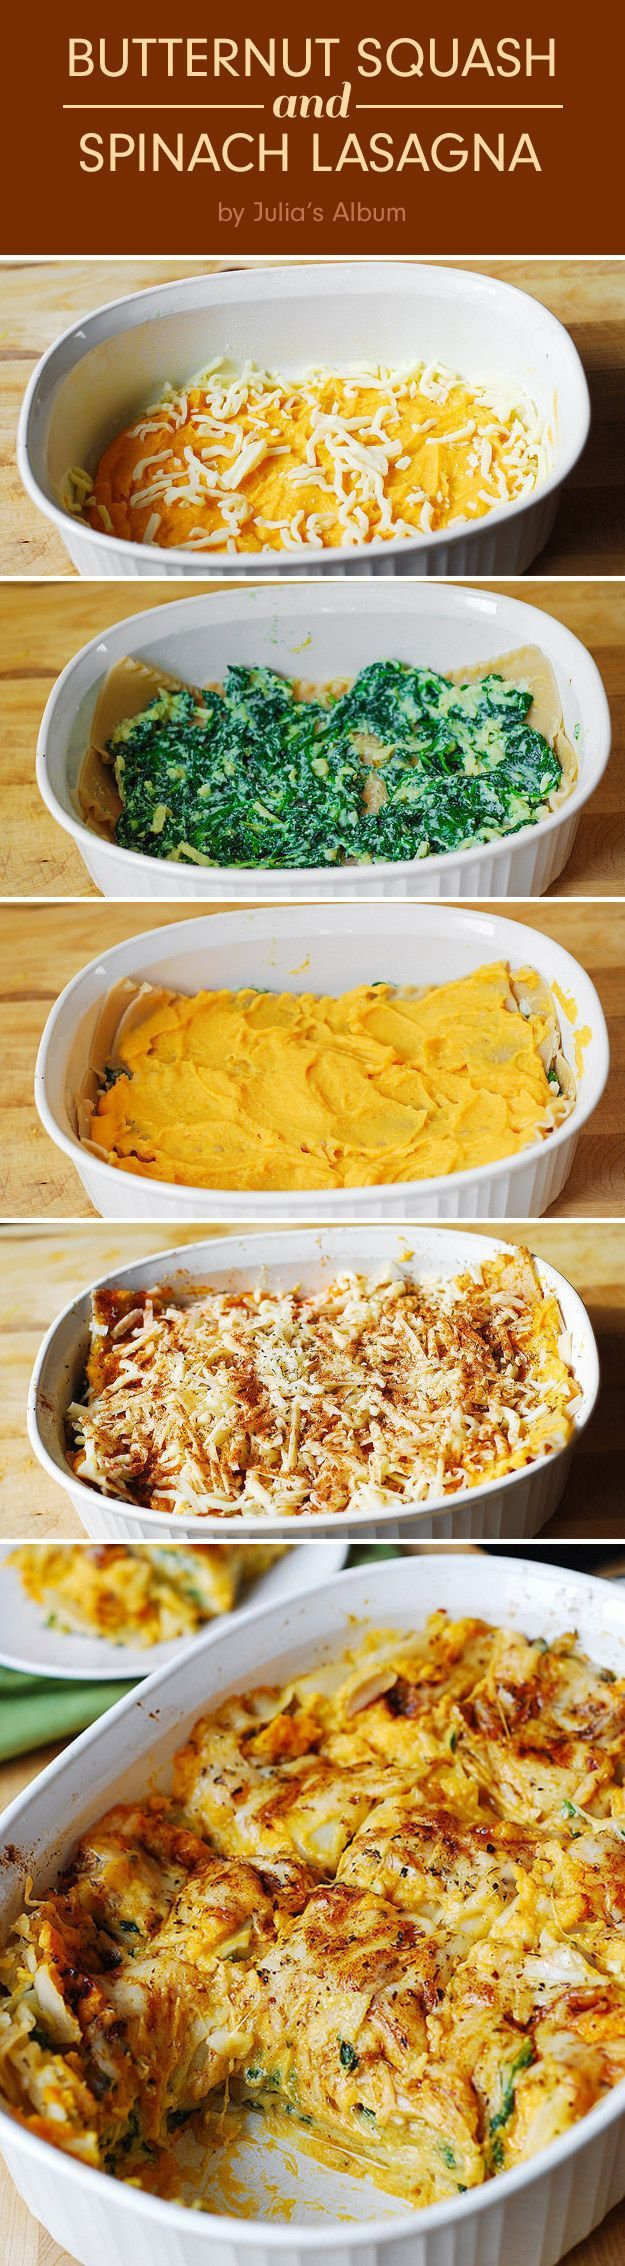 Butternut Squash and Spinach Lasagna   Here's What You Should Eat For Dinner This Week